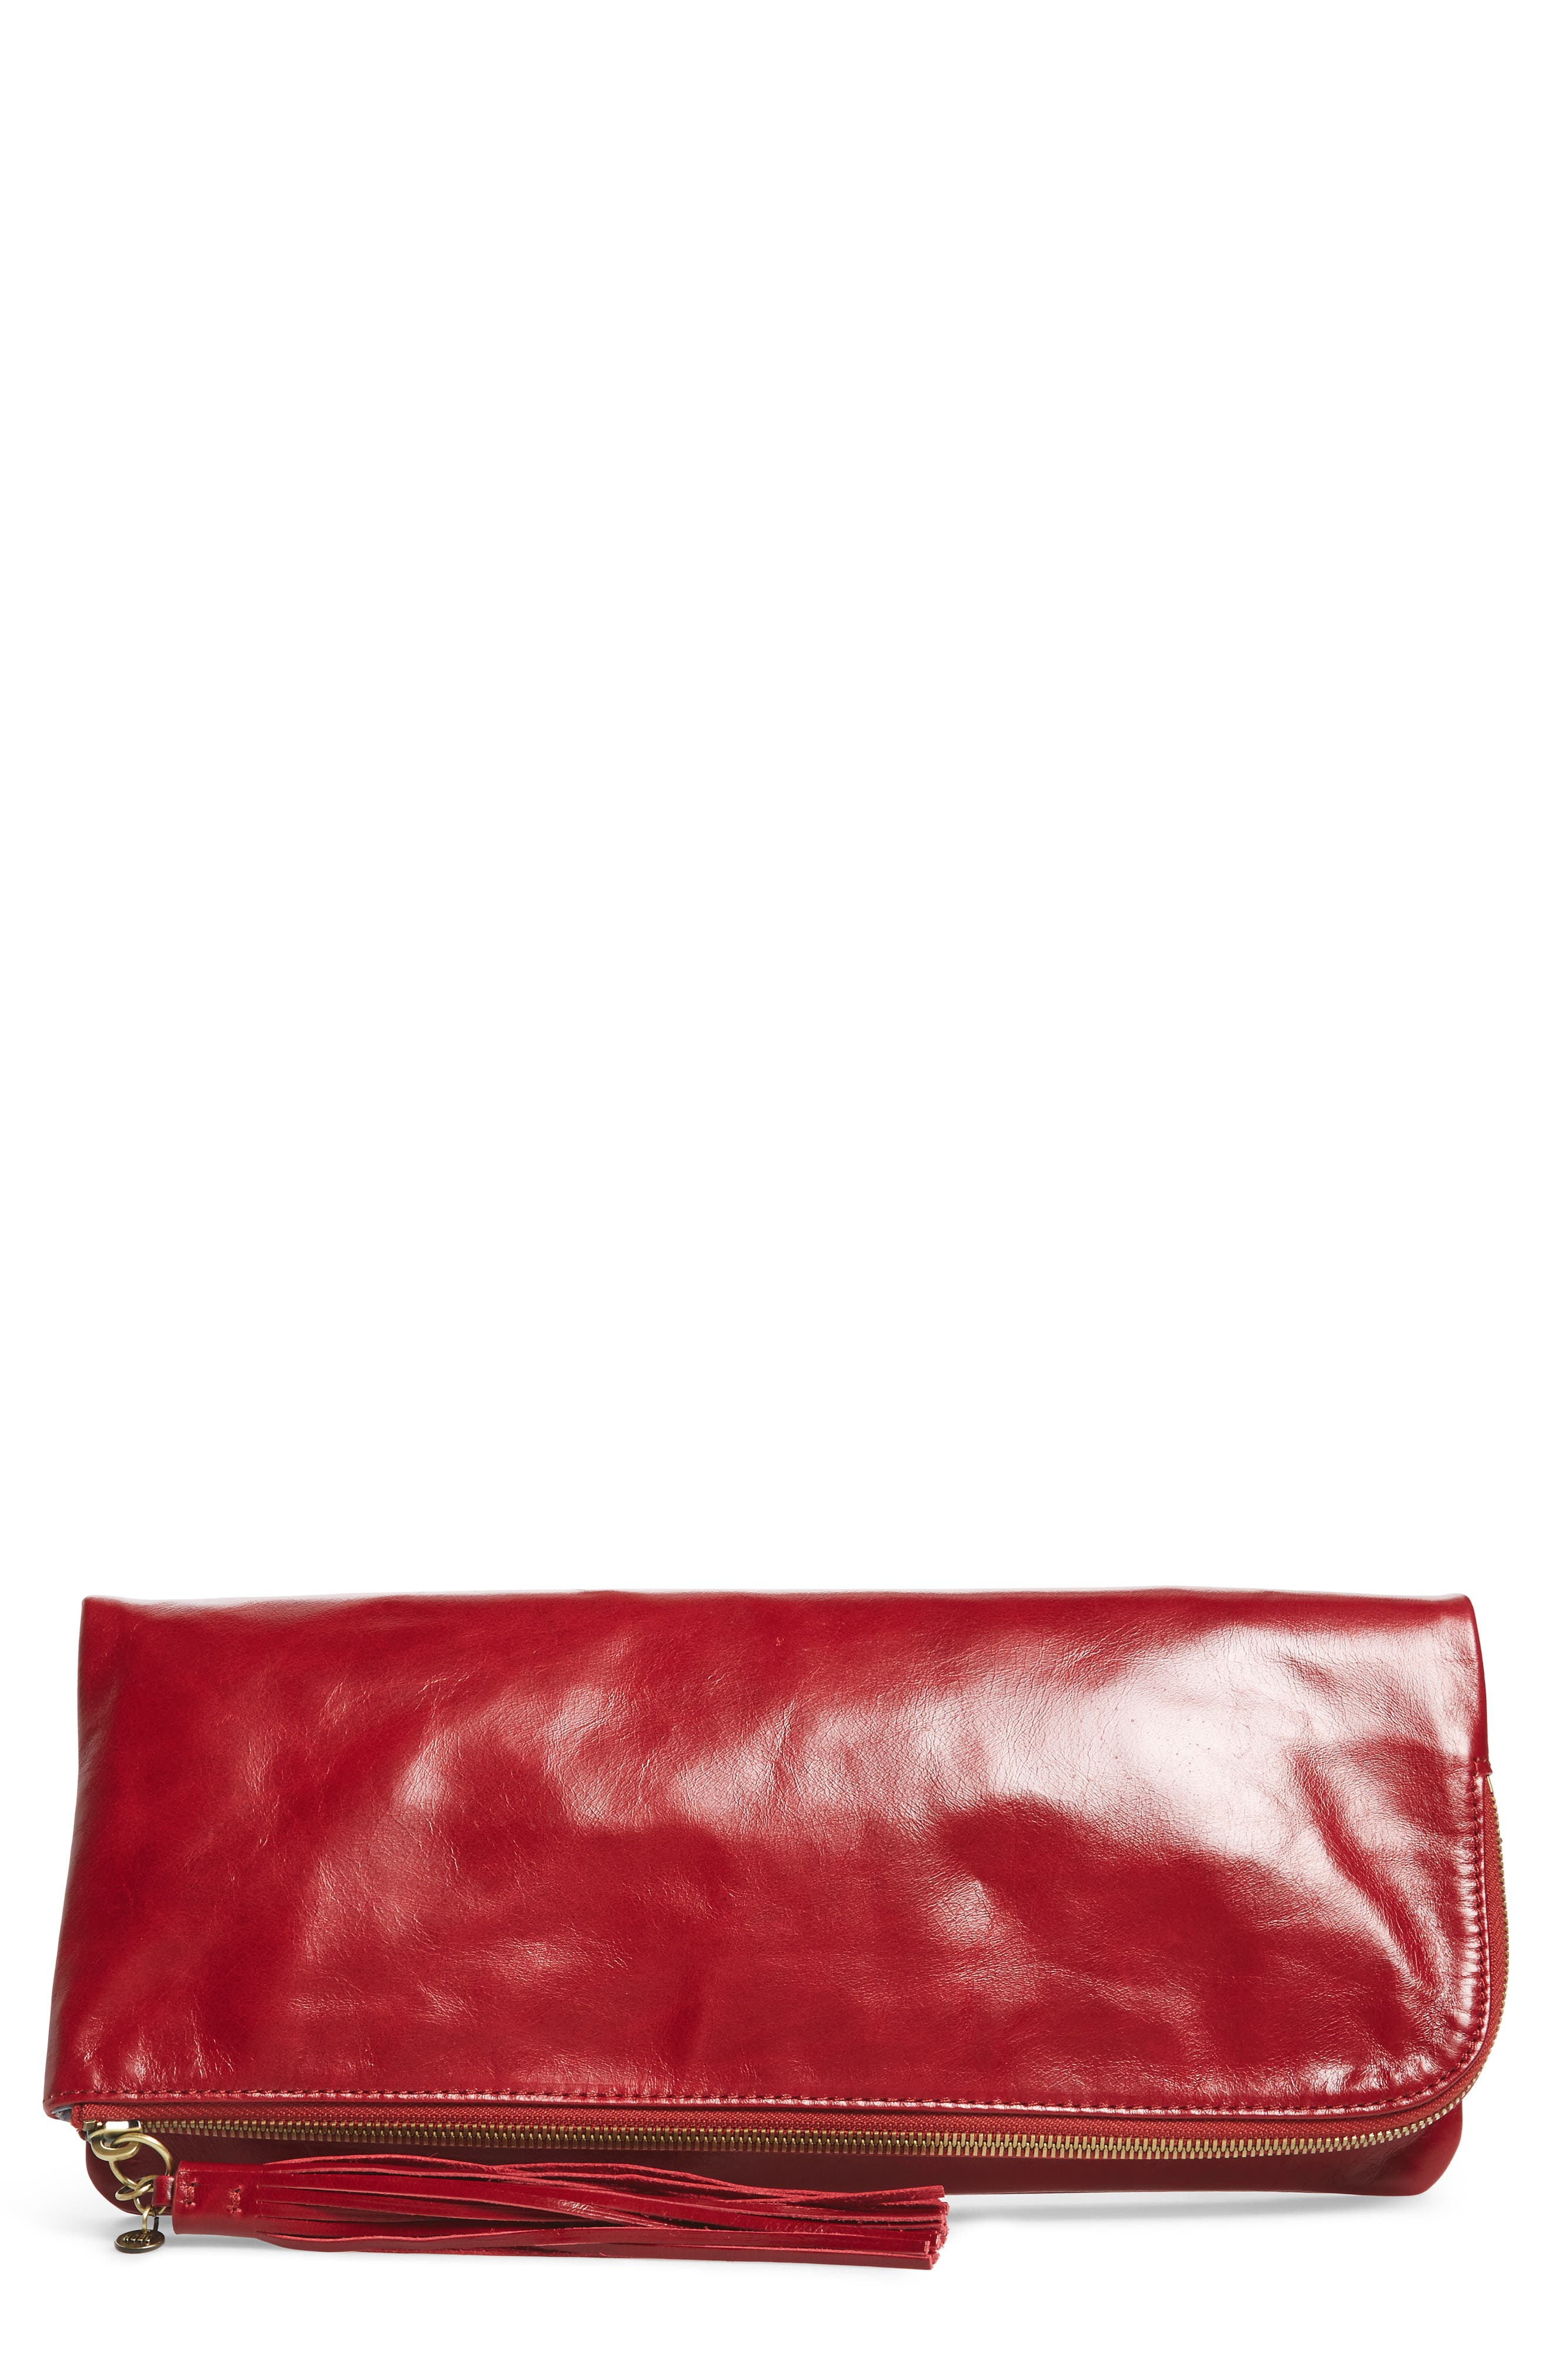 Raine Calfskin Leather Foldover Clutch,                             Main thumbnail 4, color,